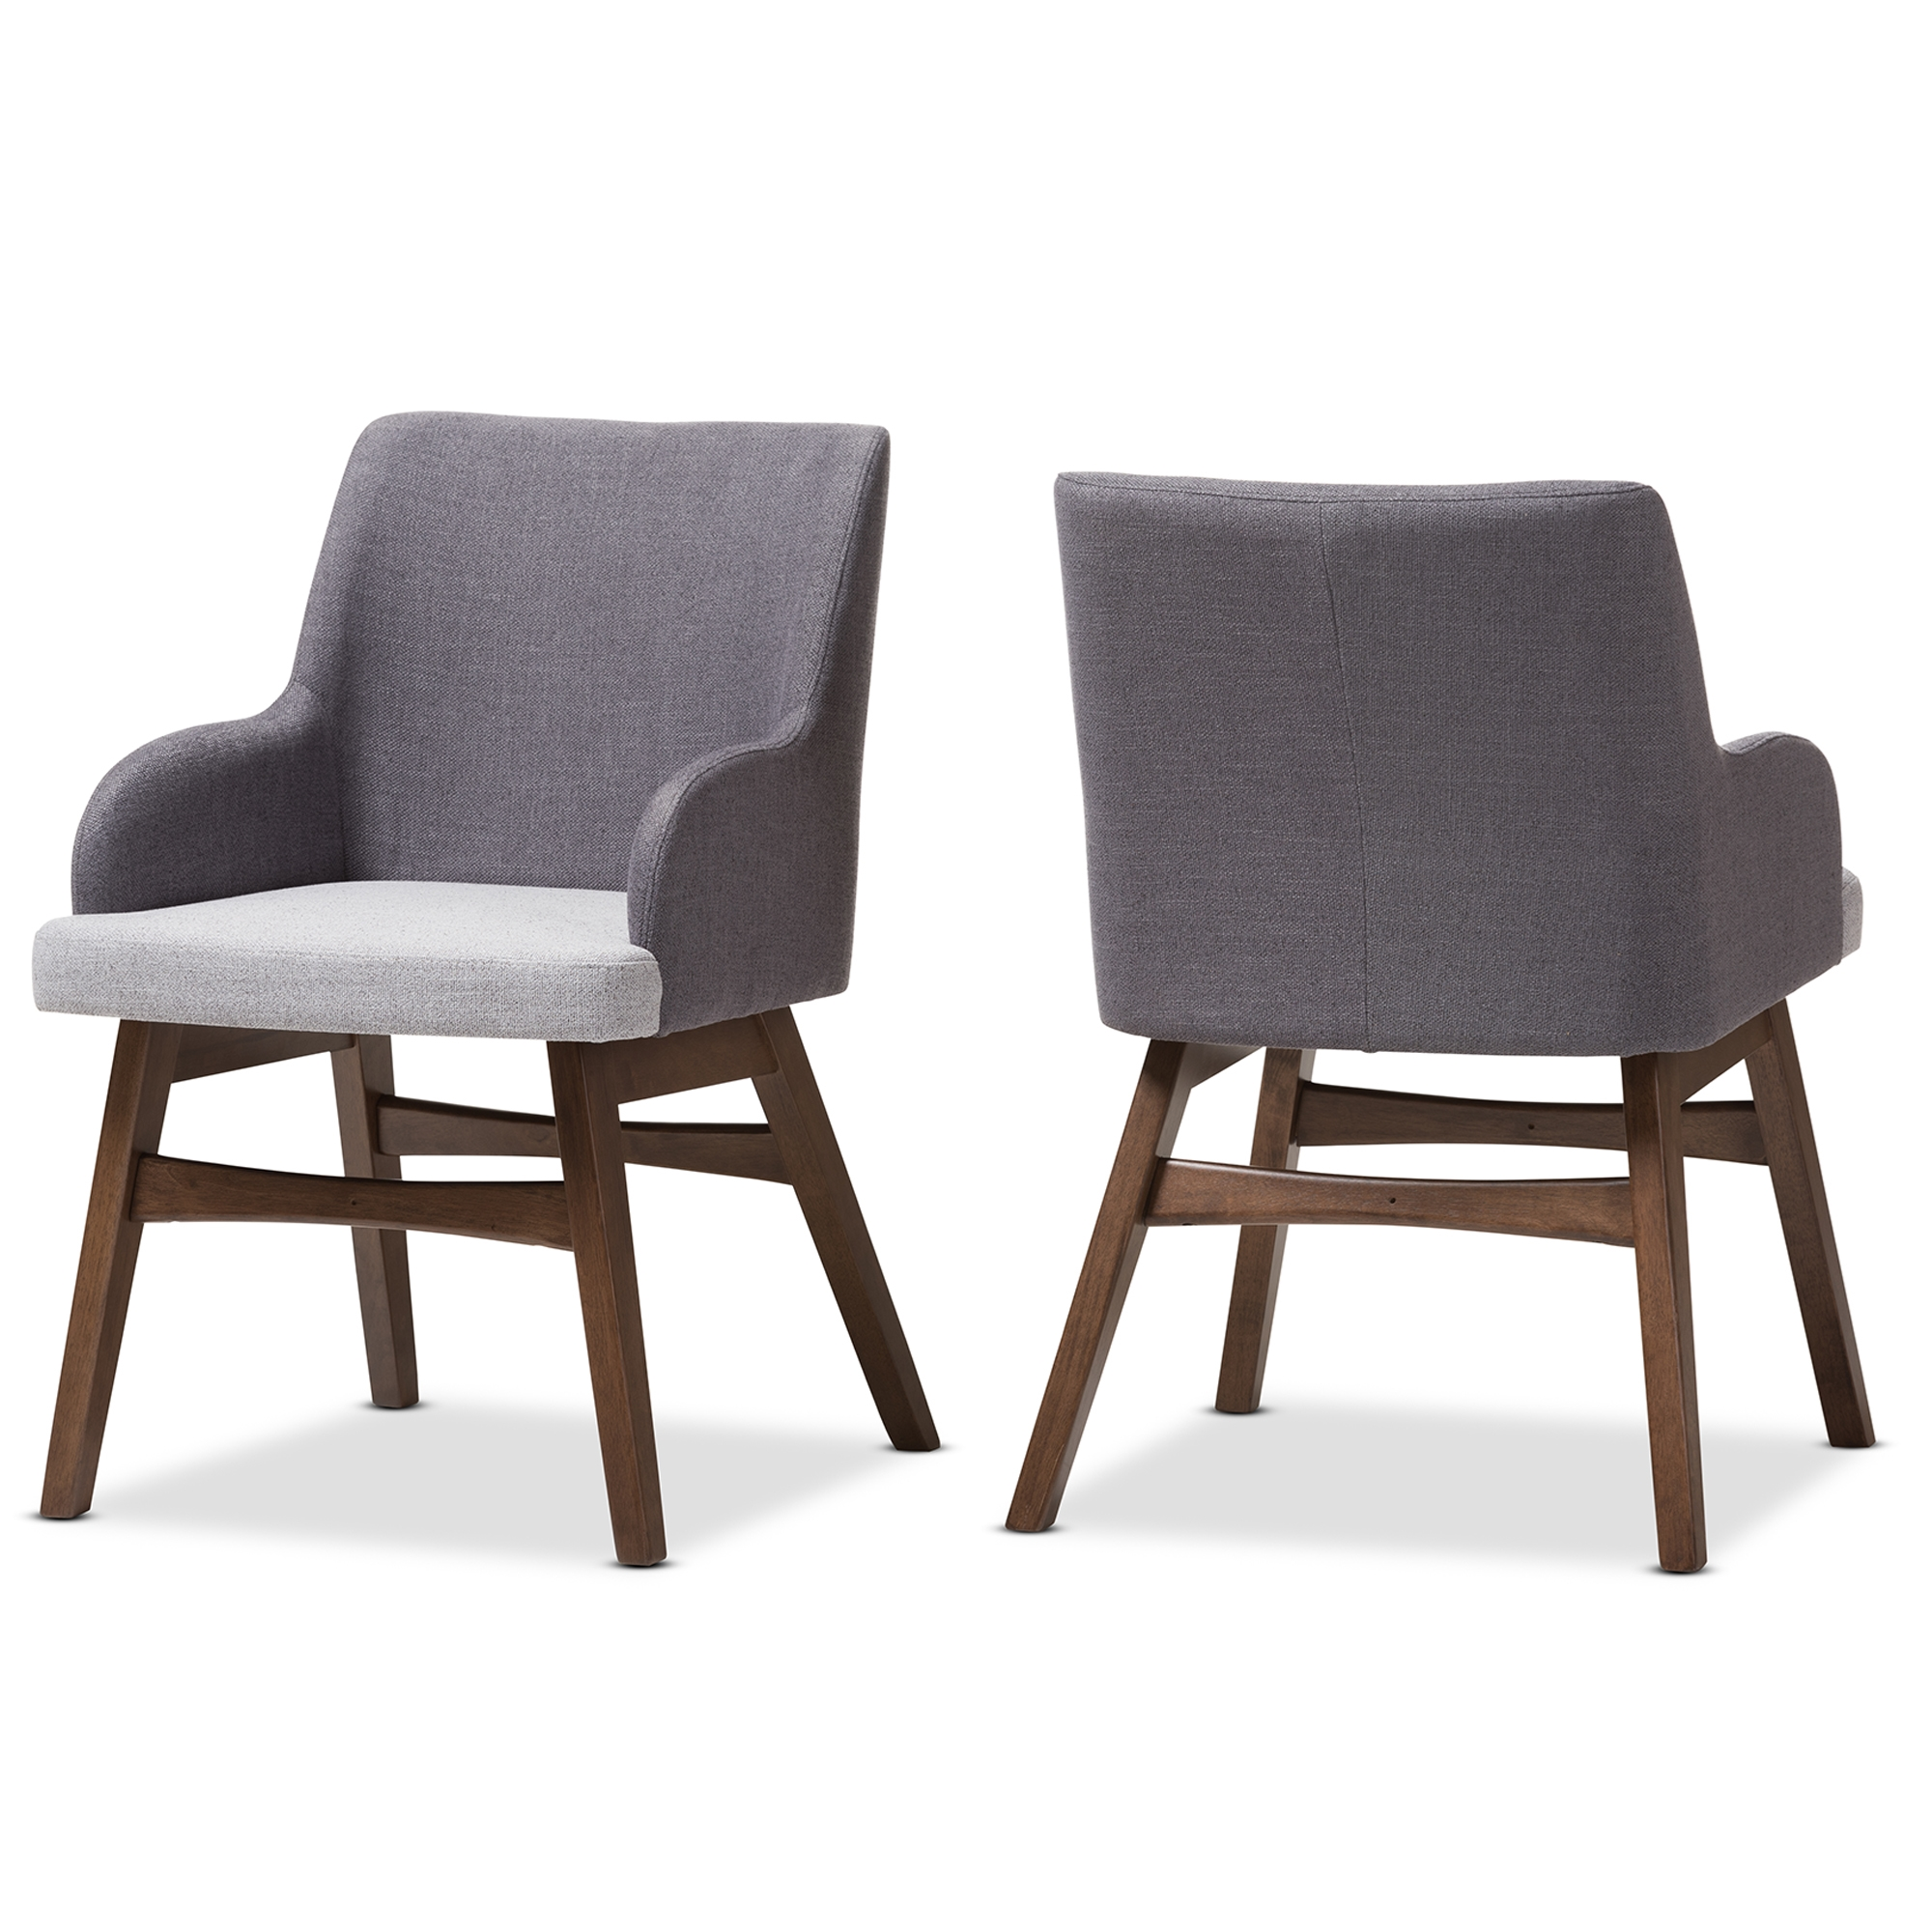 wholesale dining chair wholesale dining room furniture wholesale rh wholesale interiors com dining room set wholesale wholesale upholstered dining room chairs